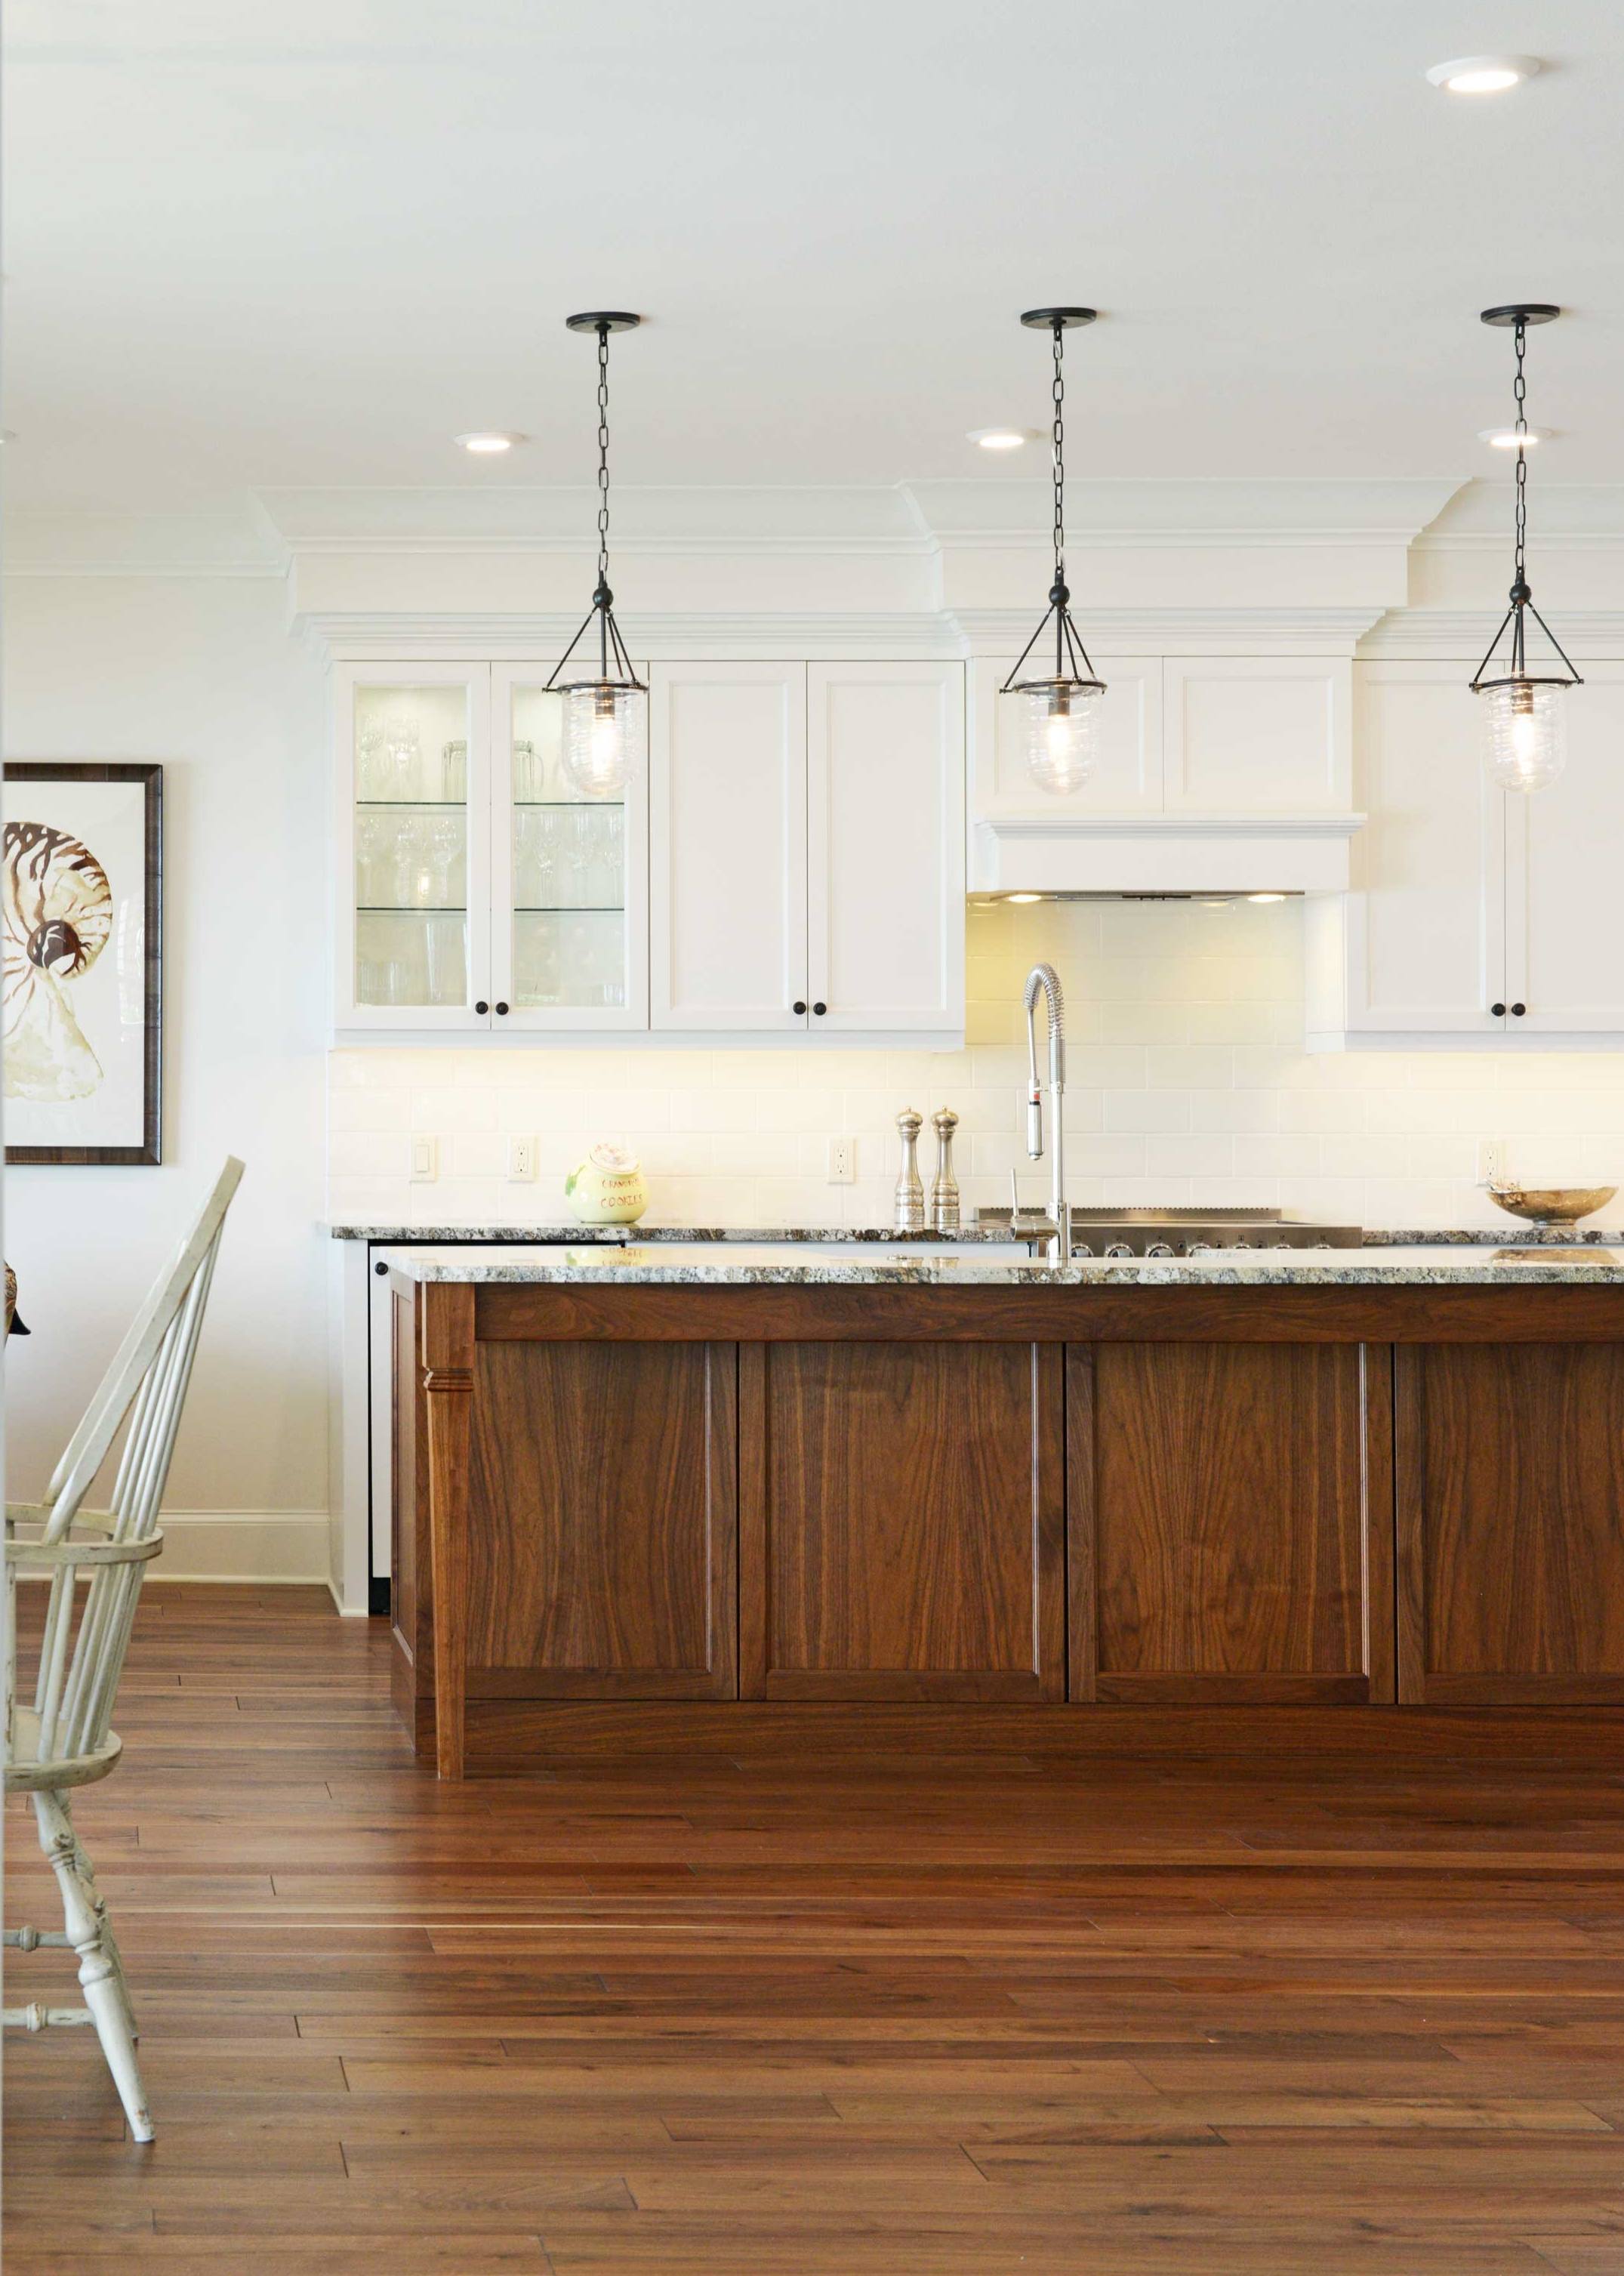 Kitchen Renovation as Part of a Complete Home Remodel